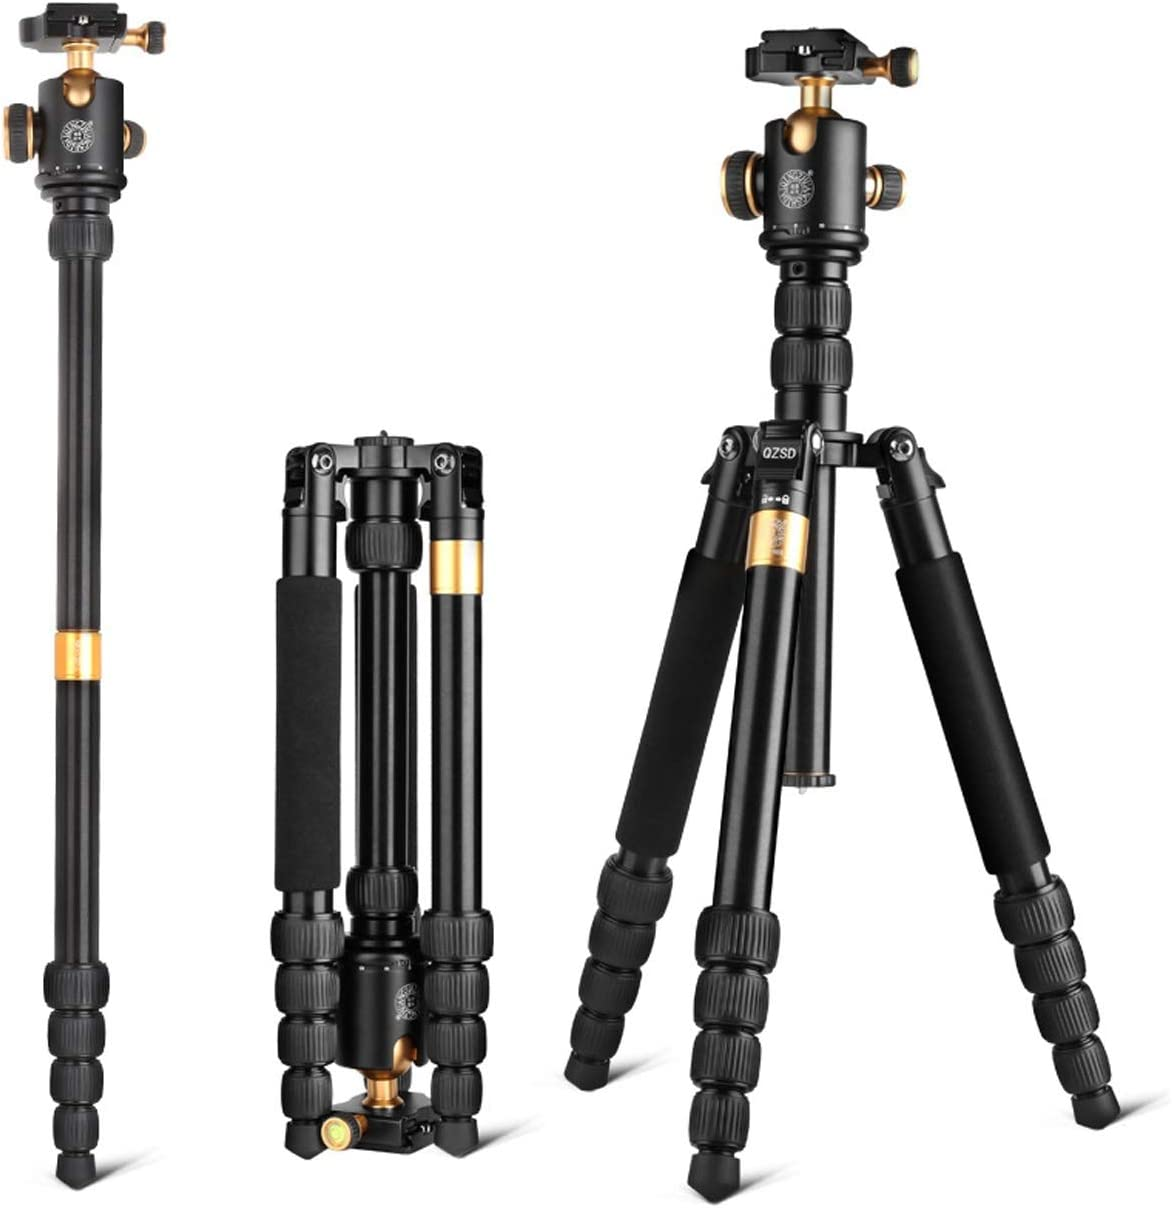 "Color : Black LLluckyHW DSLR Tripod Portable Tripod 360 Degree Panorama Ball Head Panoramic Shooting Flexible Sturdy Legs Tripod Camera Tripod 62/"" Use as Camera Tripod Lightweight Aluminum"